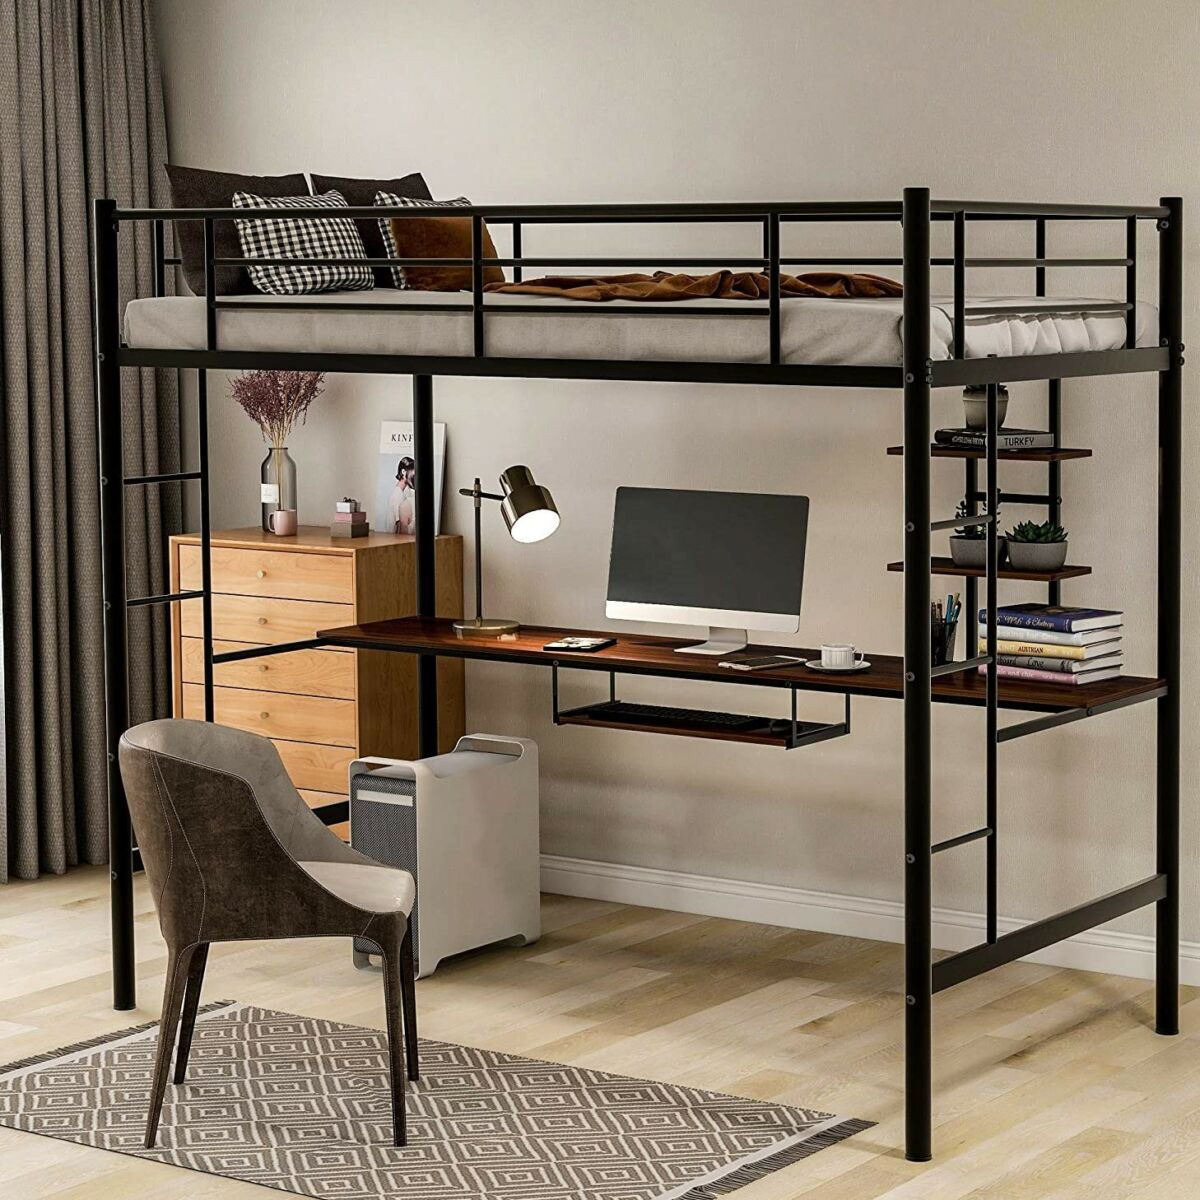 How to make the most out of a smaller living space | News by Thaiger